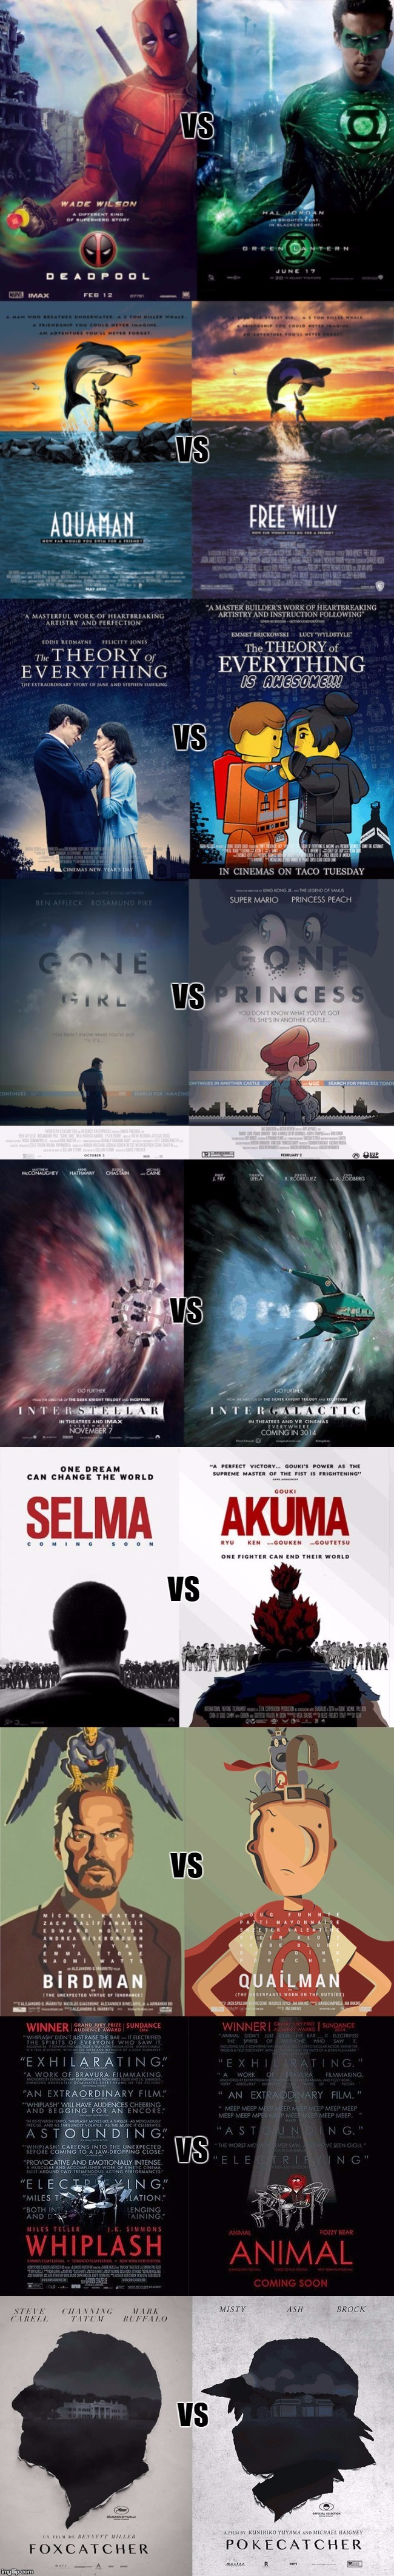 I Can't Decide Which Movie I'd Like To See More! (Real Versus Parody Movie Poster) | . | image tagged in i can't decide which movie i'd like to see more,memes,movies,parody,one of these things is not like the other,funny | made w/ Imgflip meme maker